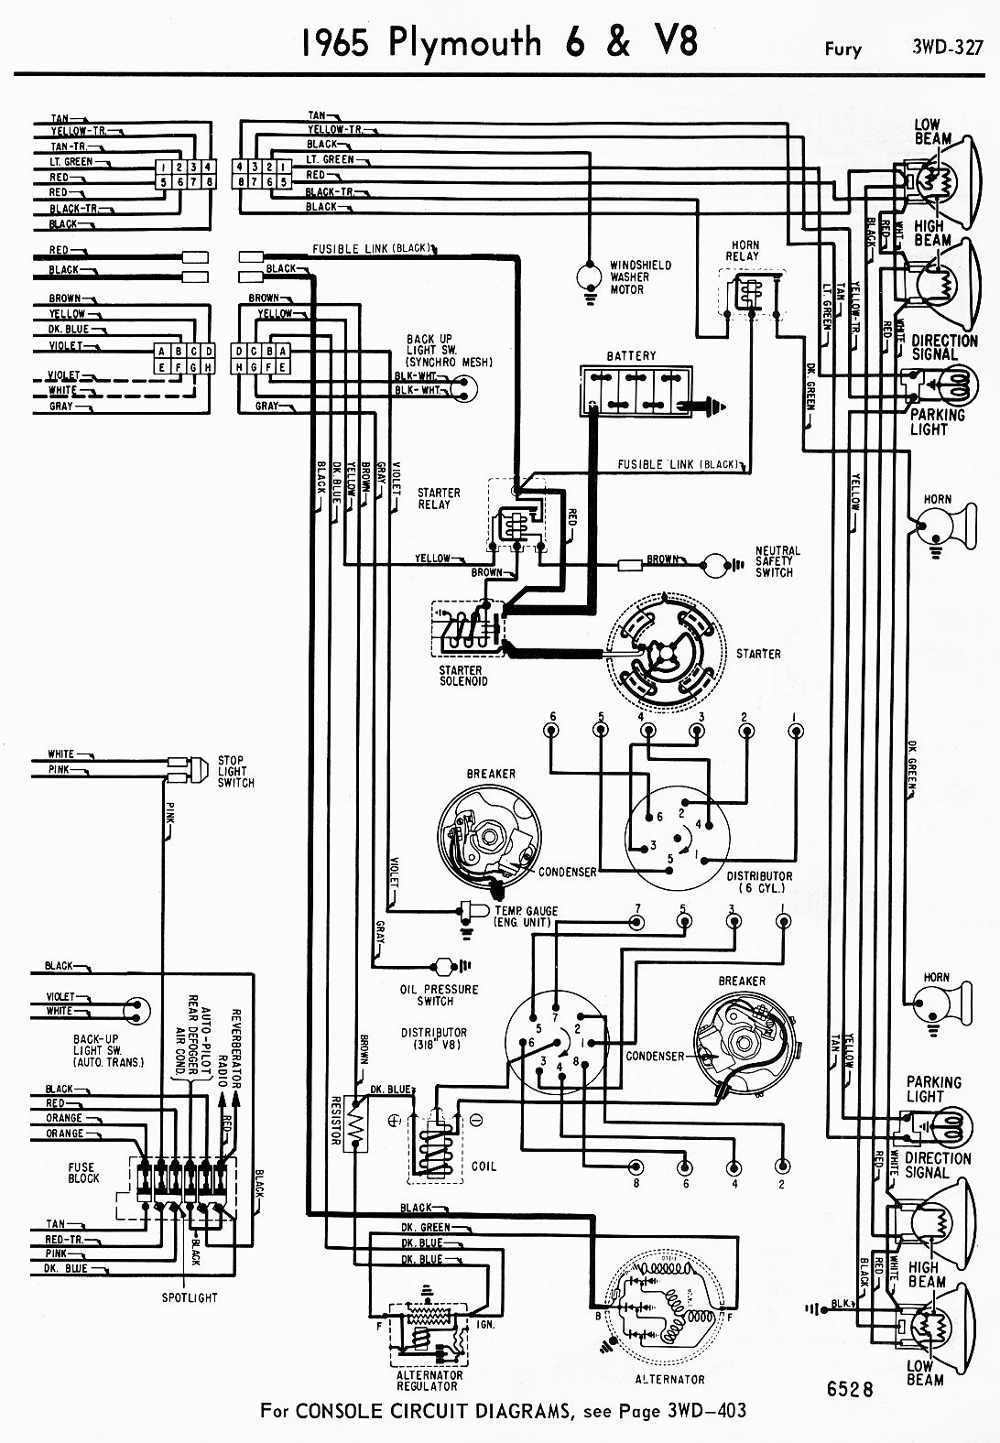 1966 Plymouth Fury Wiring Diagram Smart Wiring Diagrams \u2022 1985 Ford  F-250 Wiring Diagram 1965 Ford Thunderbird Wiring Diagram Free Download